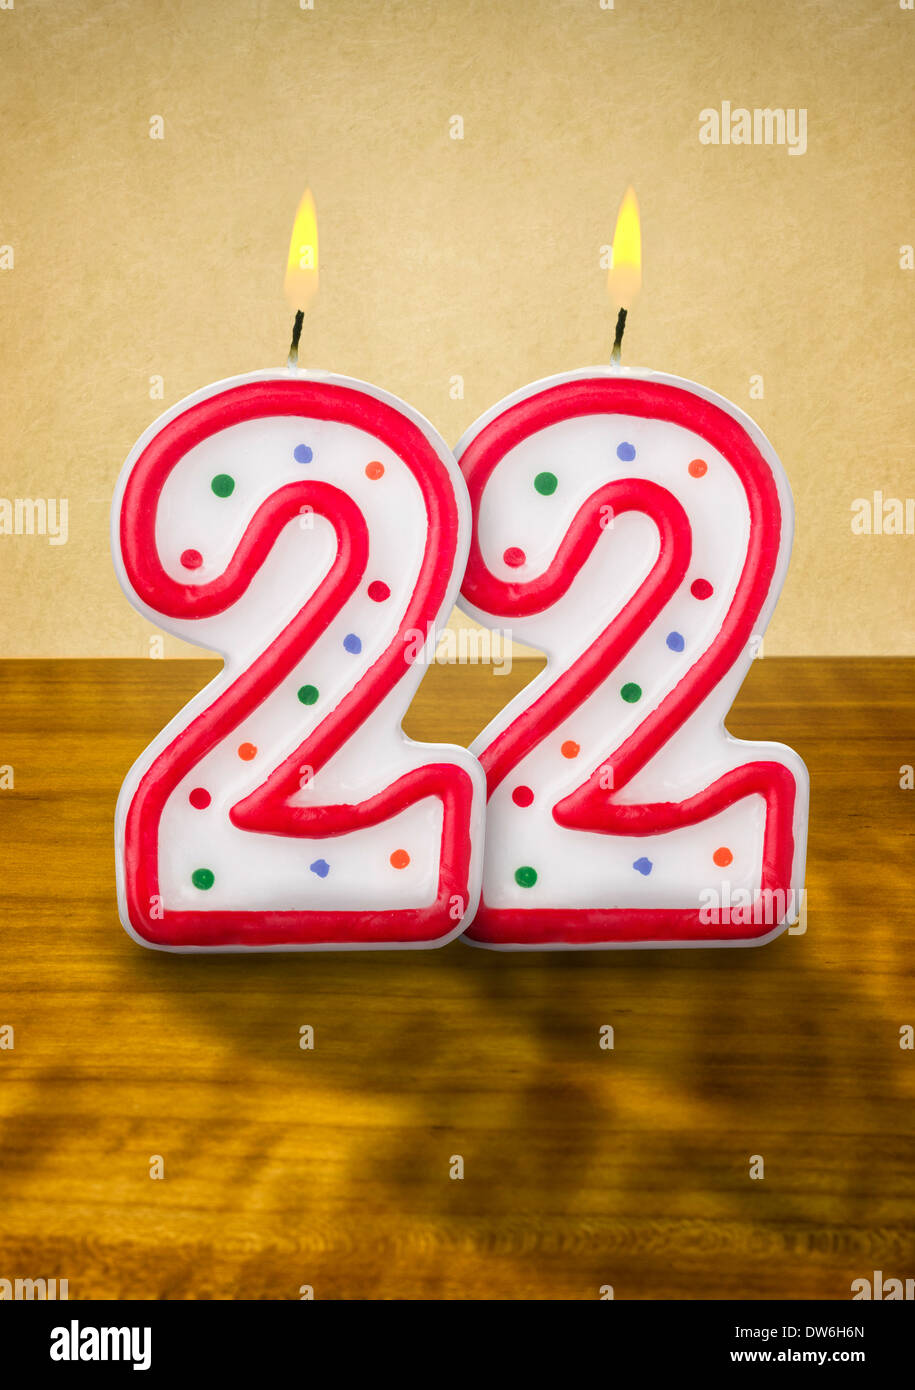 burning birthday candles number 22 stock photo 67142733 alamy